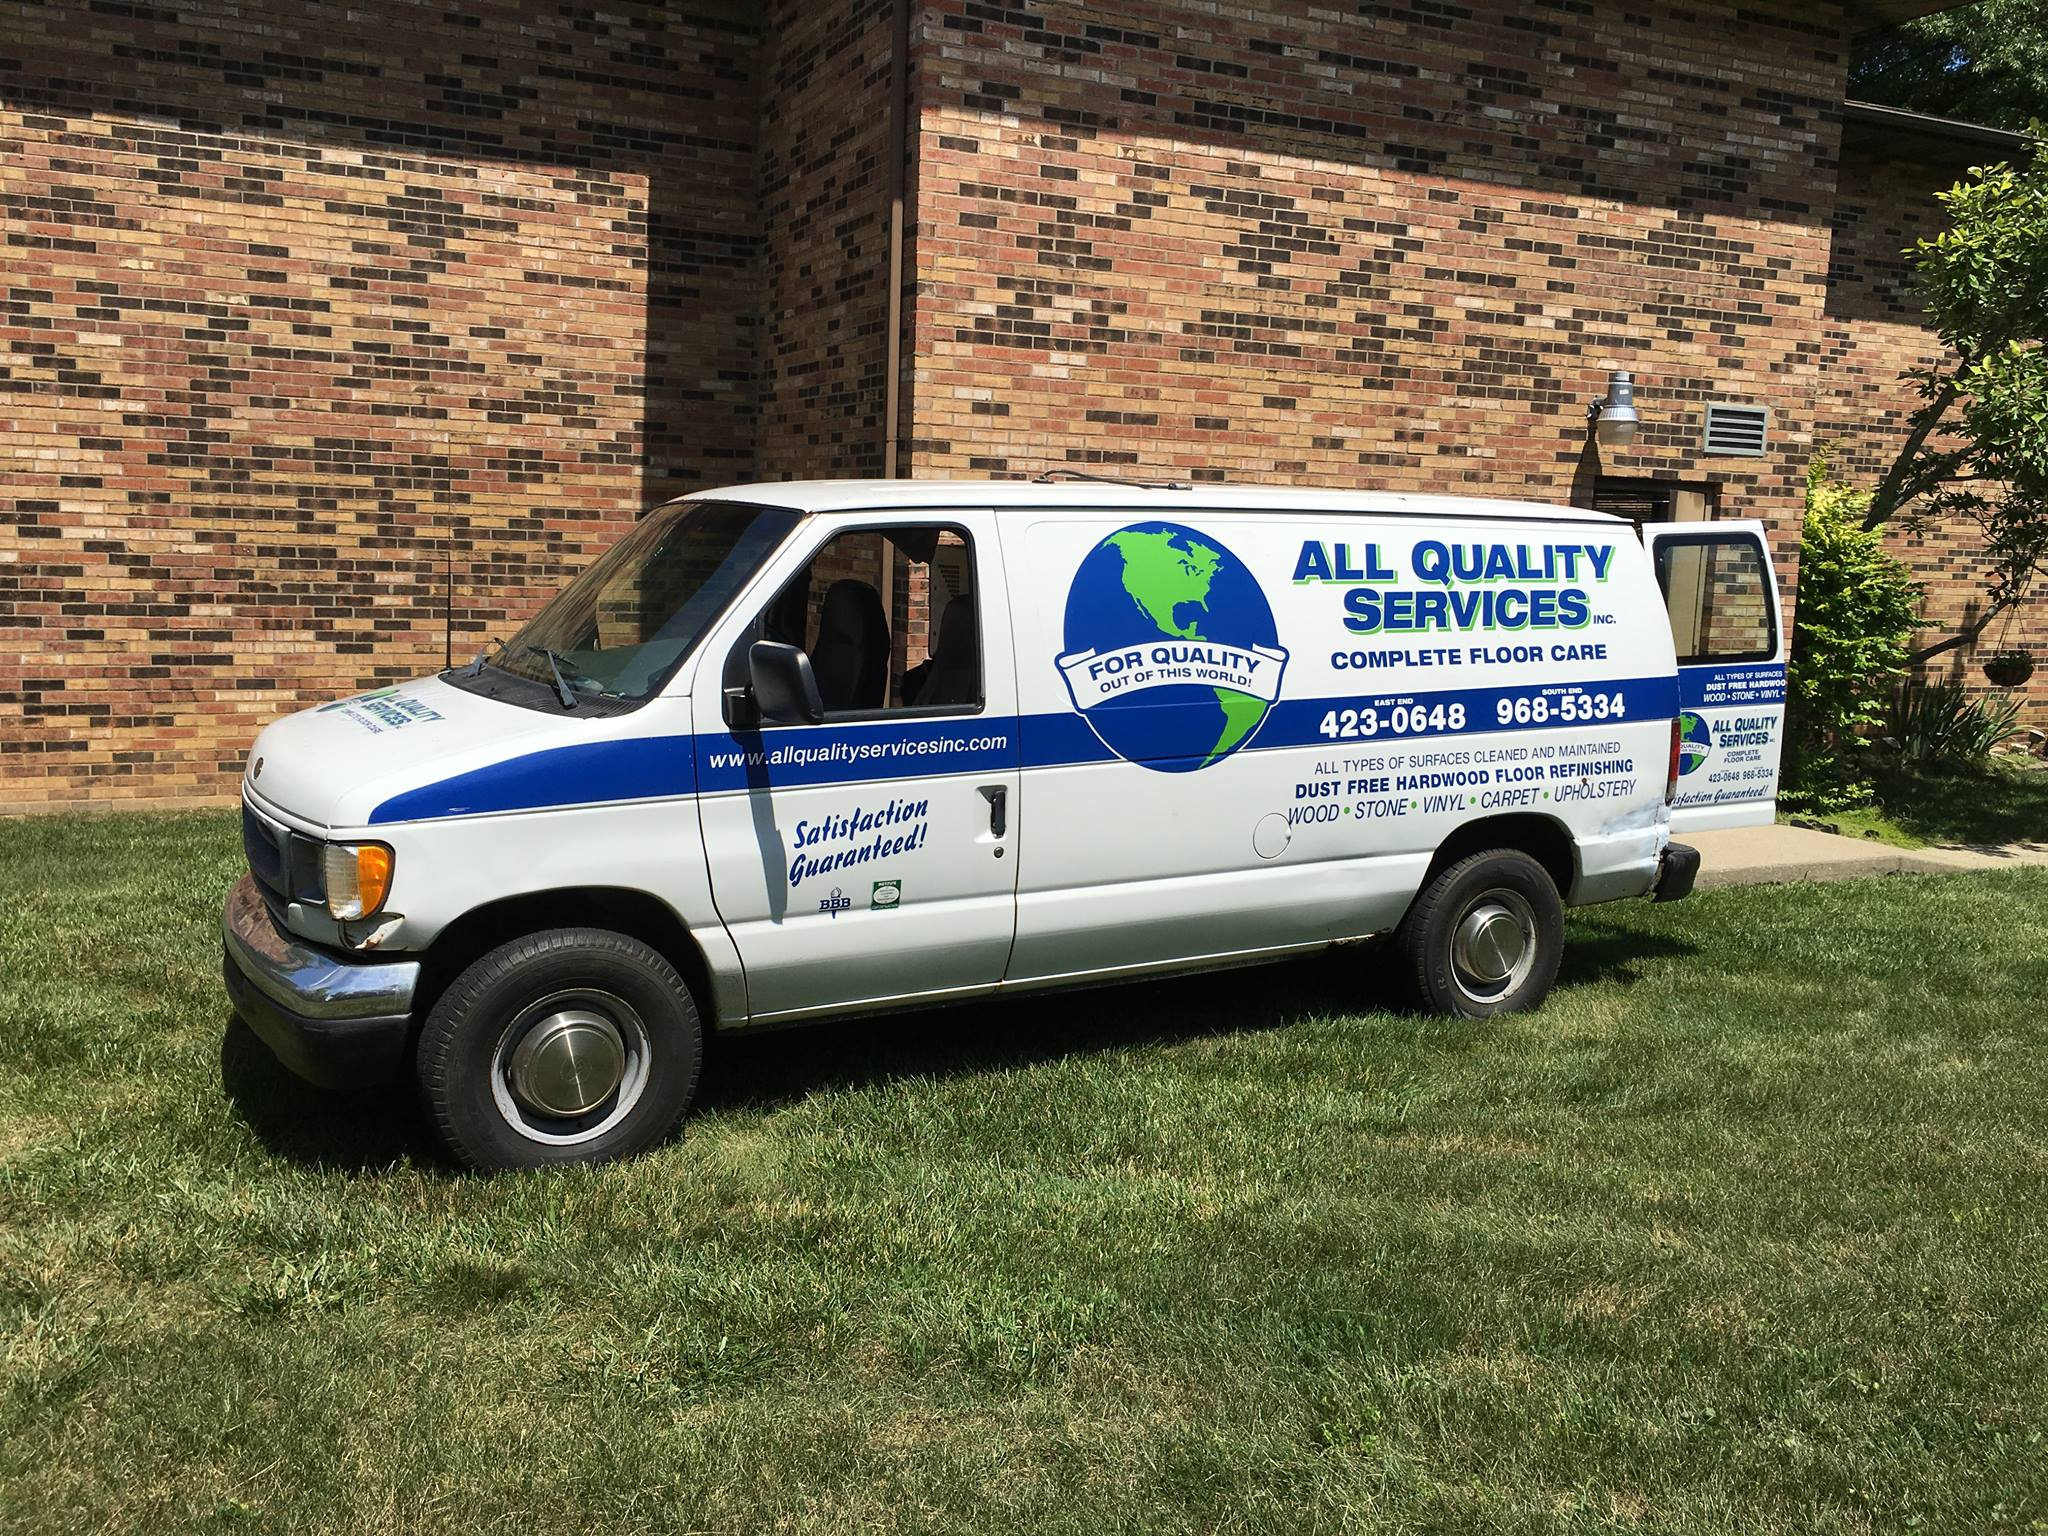 All Quality Services Van